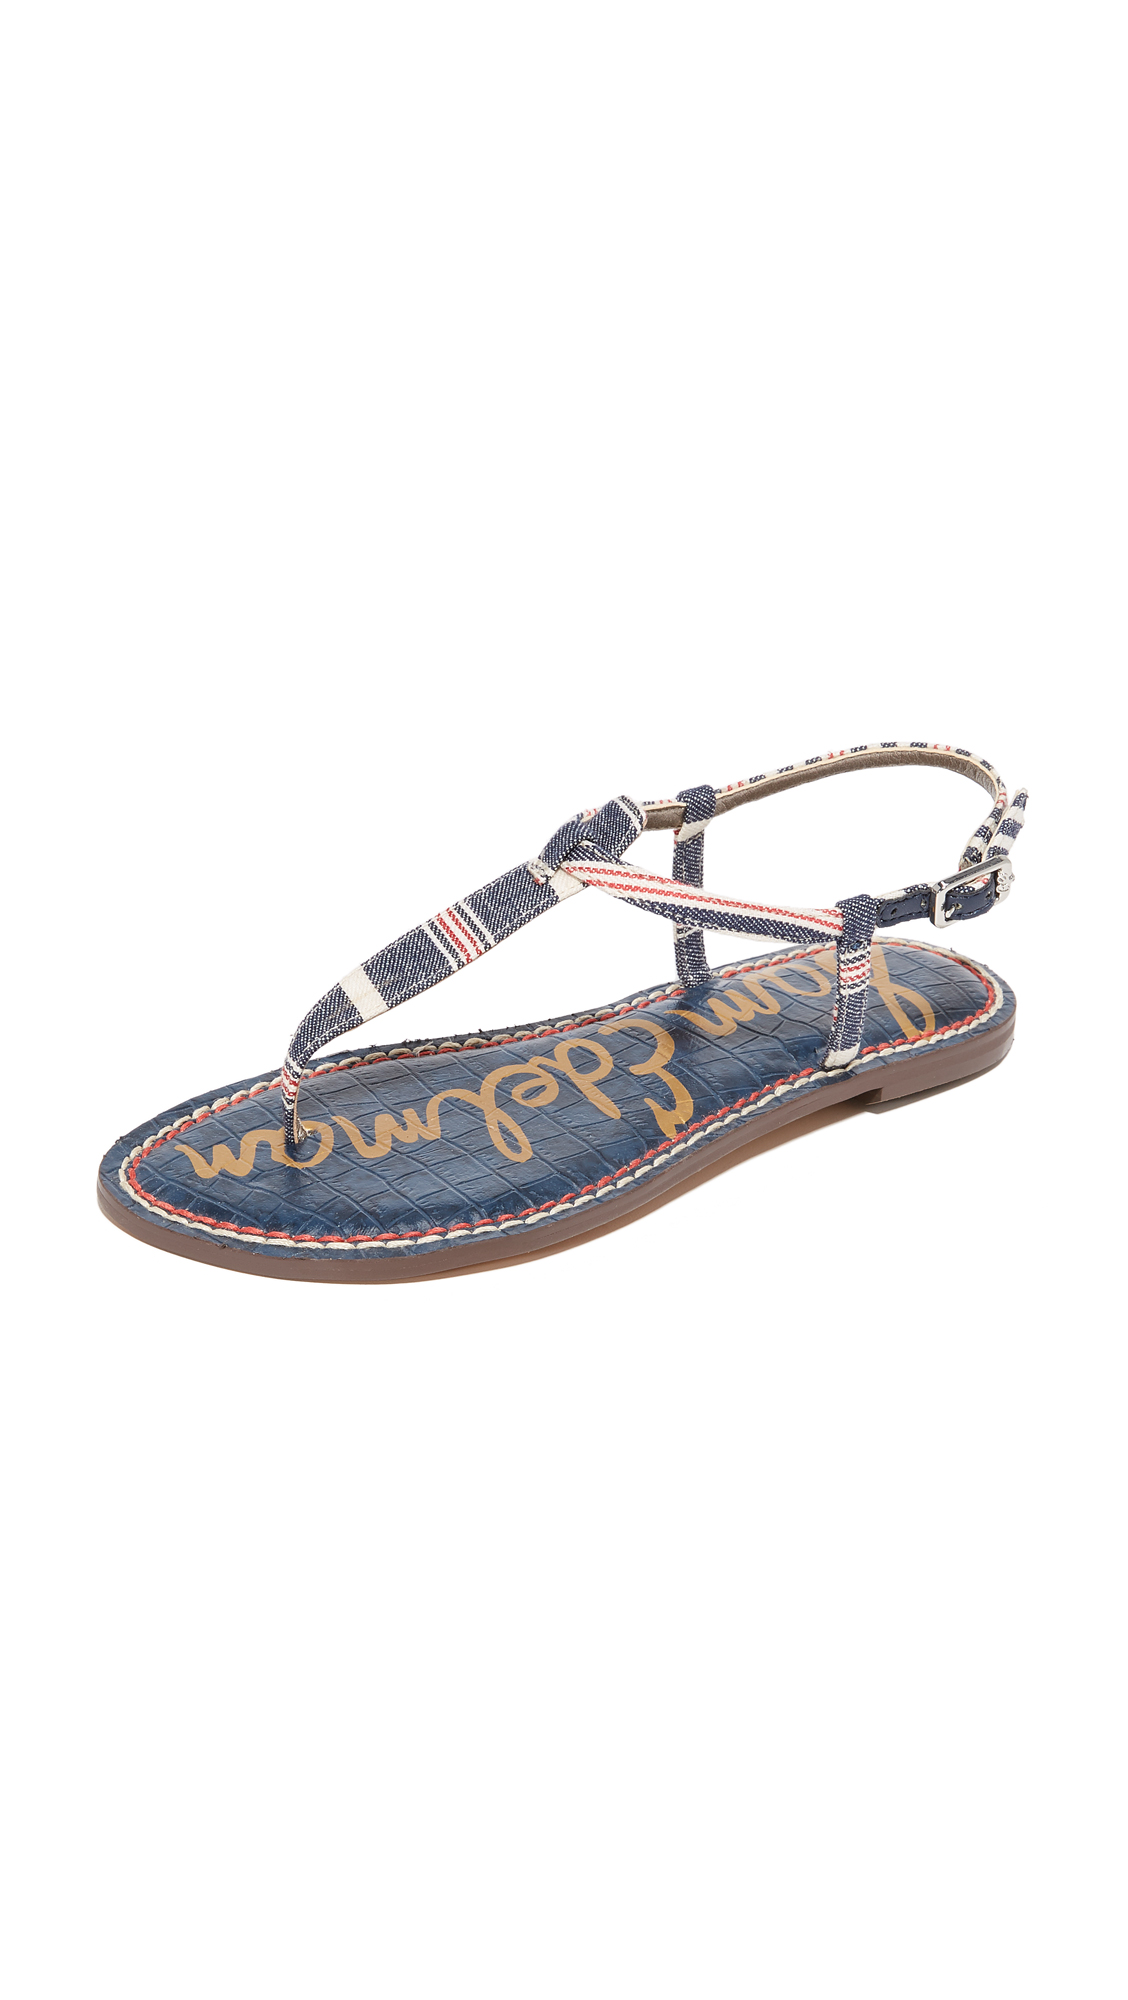 Sam Edelman Gigi Striped Sandals - Blue Multi